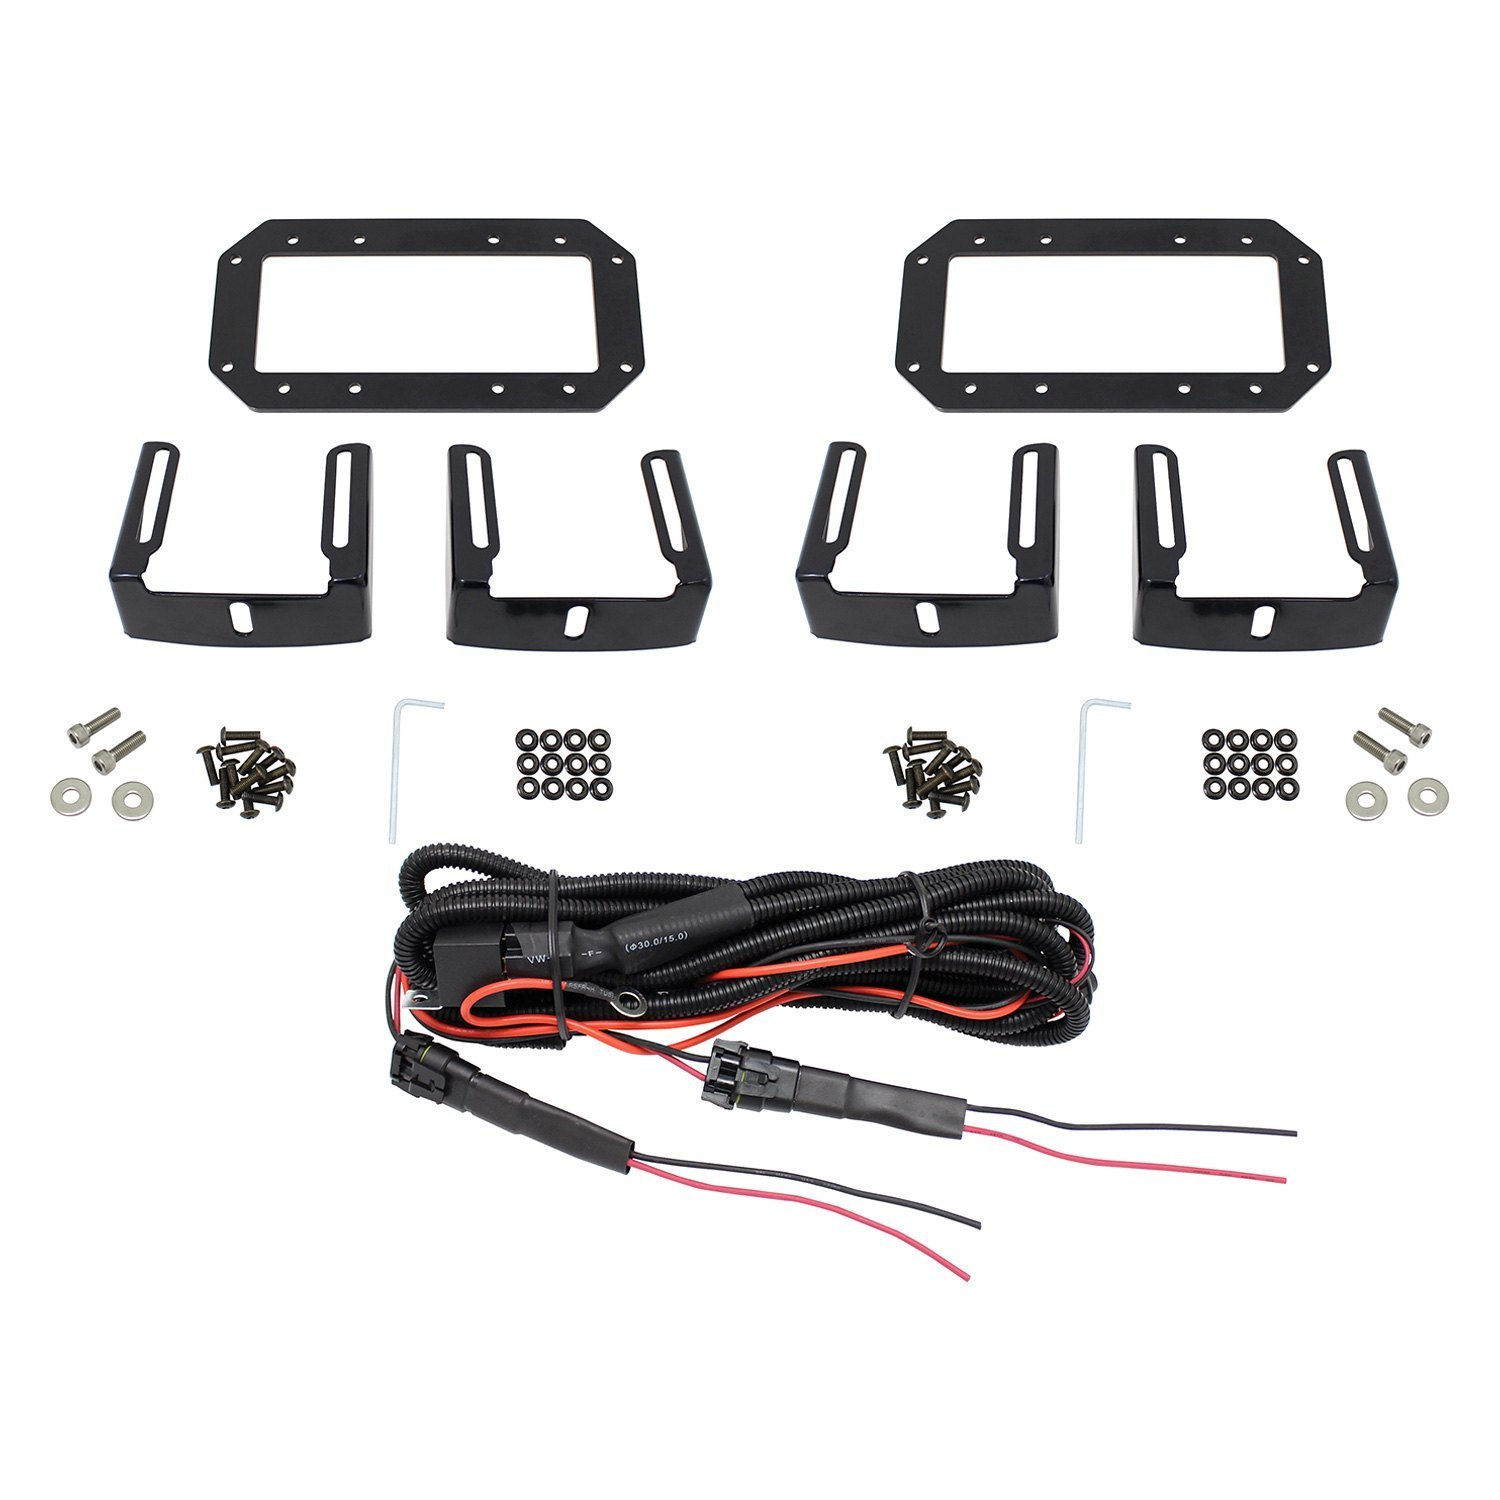 Grille Guard Mounted Hdx B Force 6 2x36w Dual Row Combo